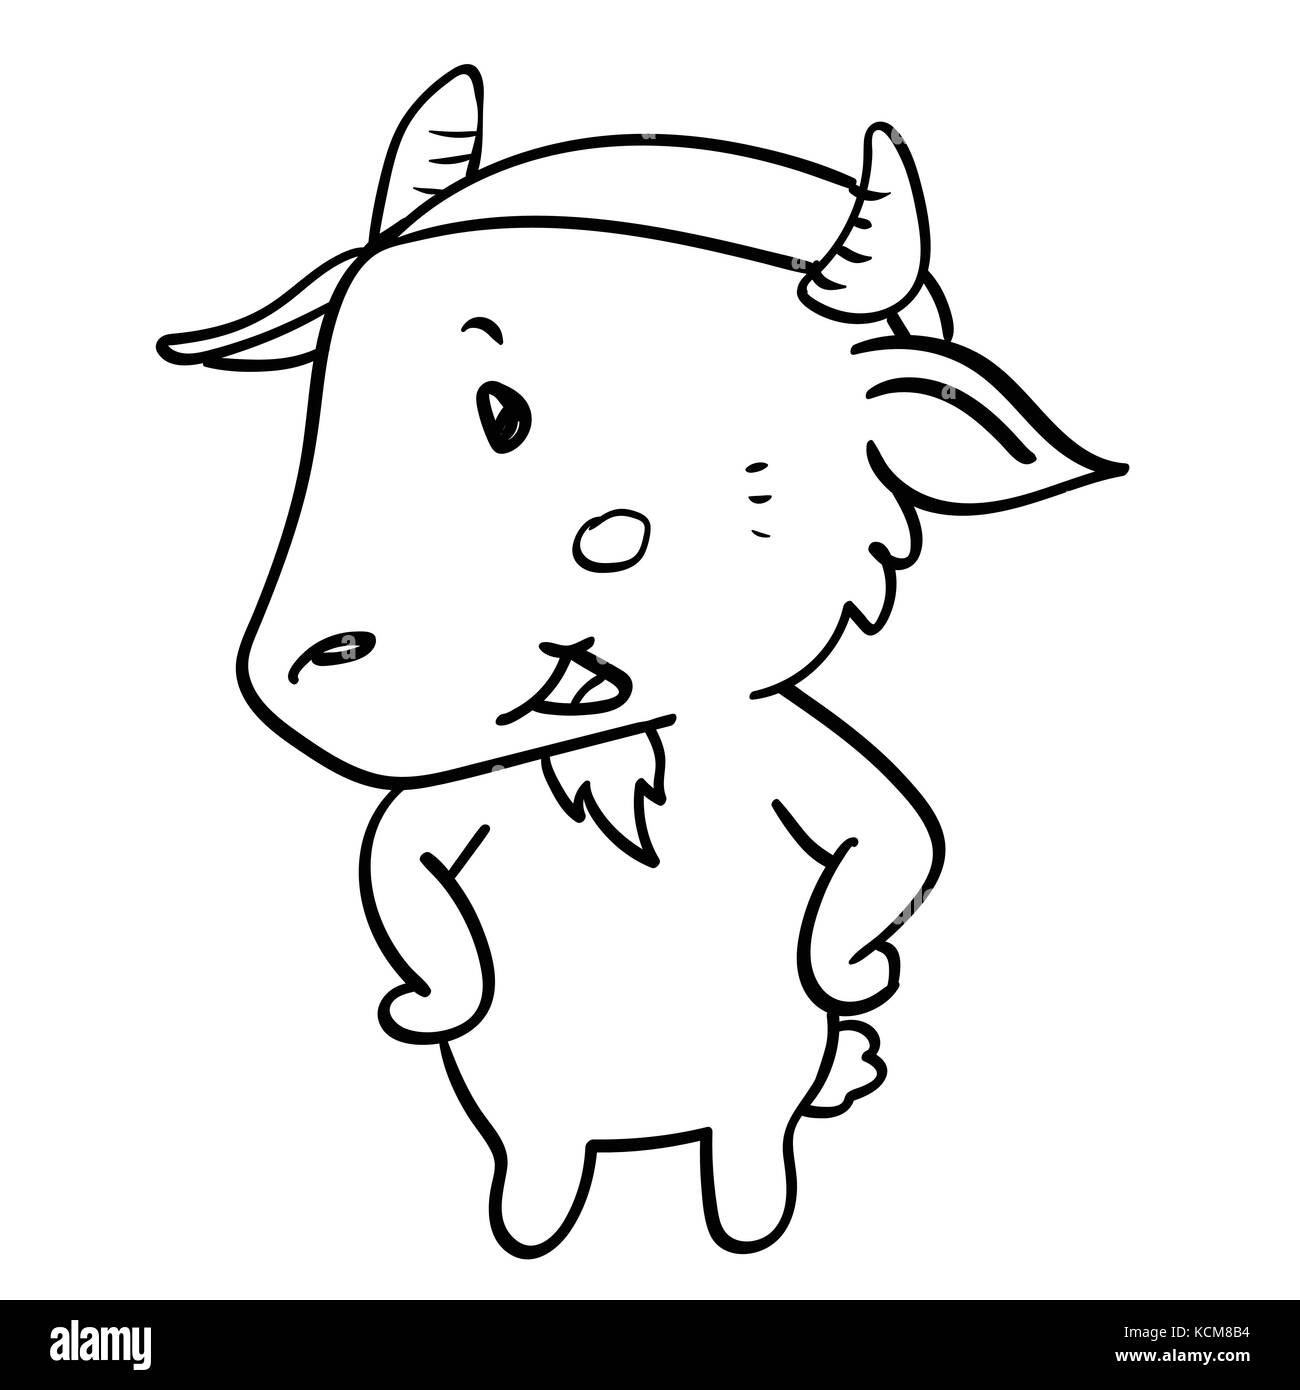 The Happy Goat Book Stock Photos  for happy goat drawing  199fiz